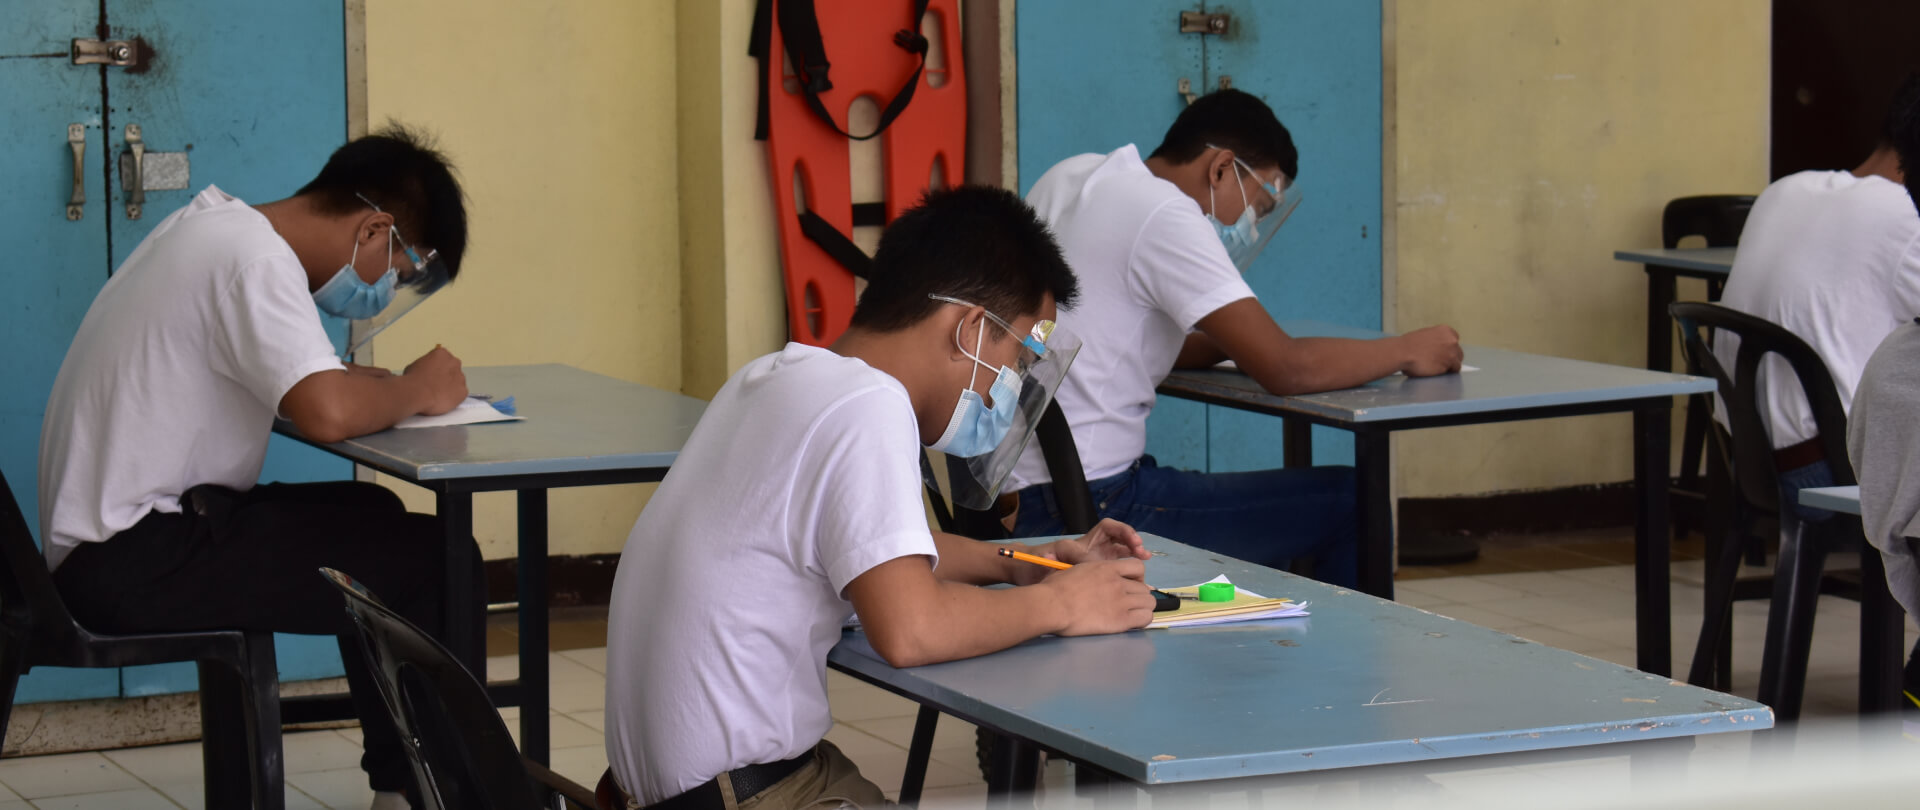 Dualtech students studying